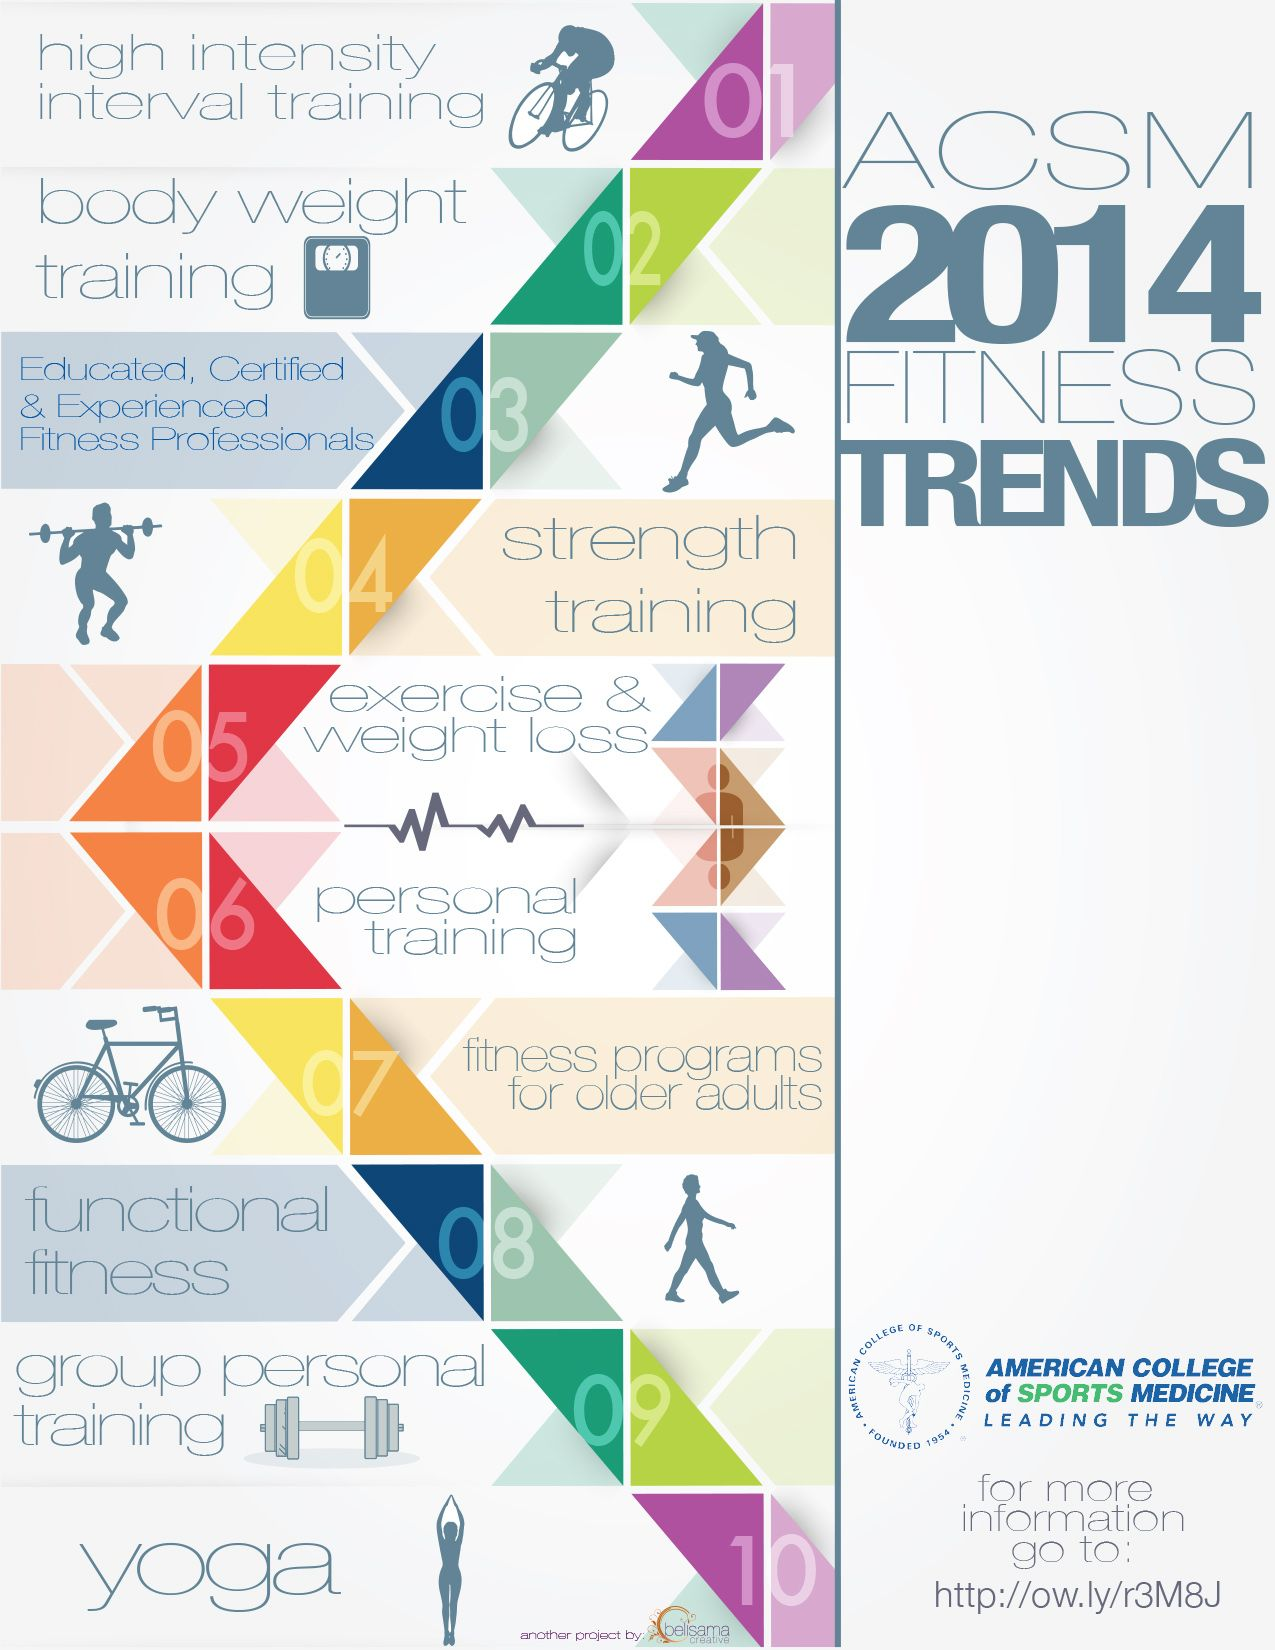 Acsm top 10 fitness trends for 2014 stay fit pinterest acsm top 10 fitness trends for 2014 1betcityfo Gallery